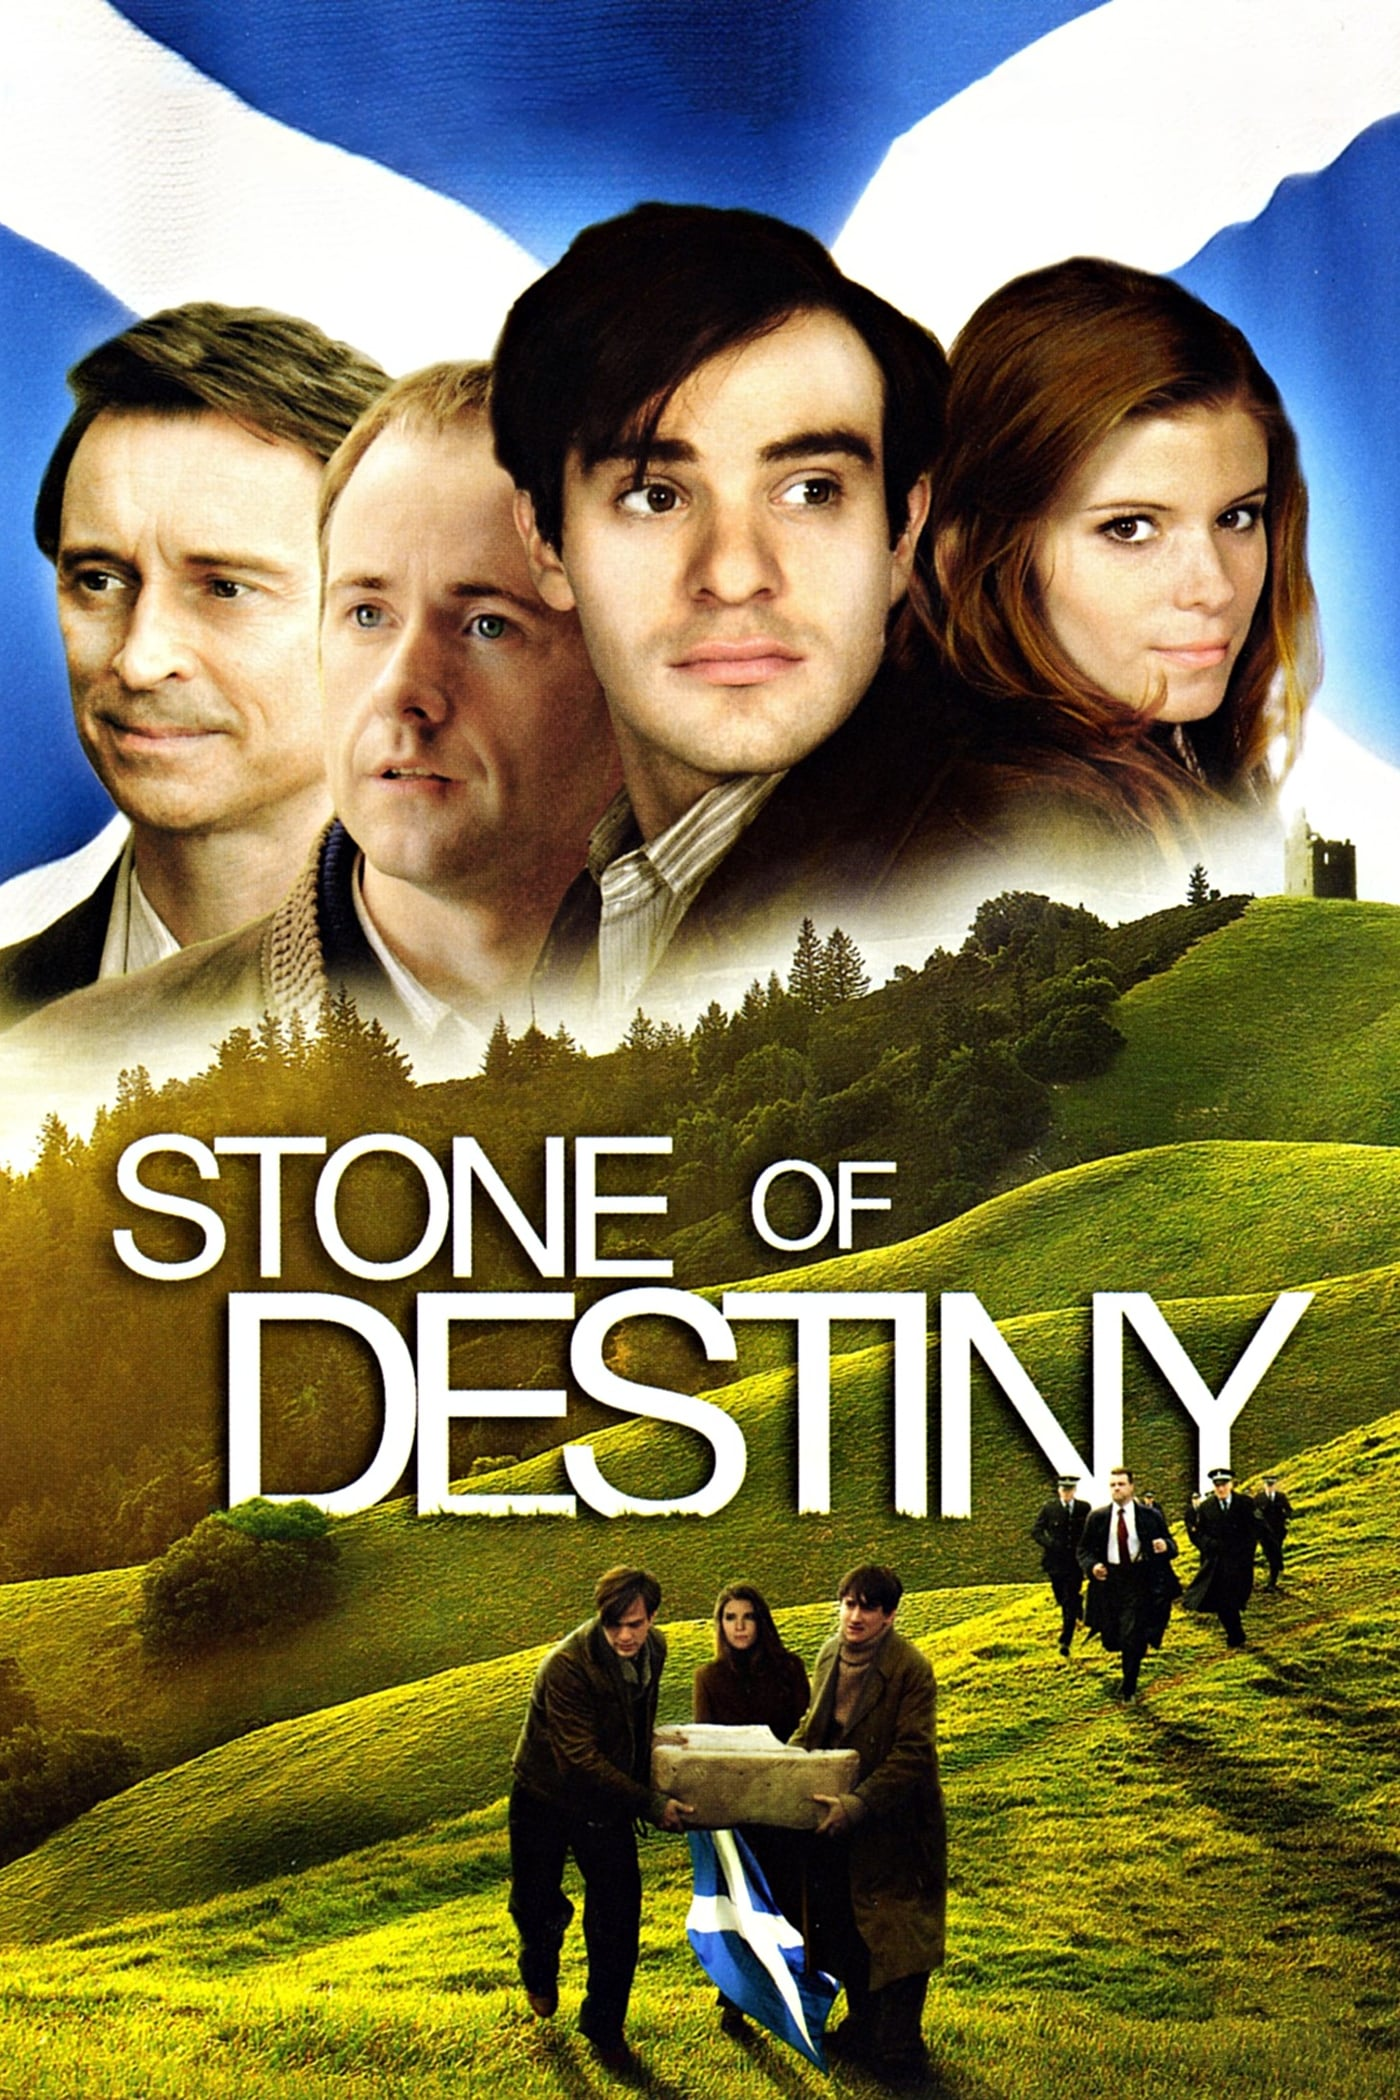 Movie stone of destiny trailer